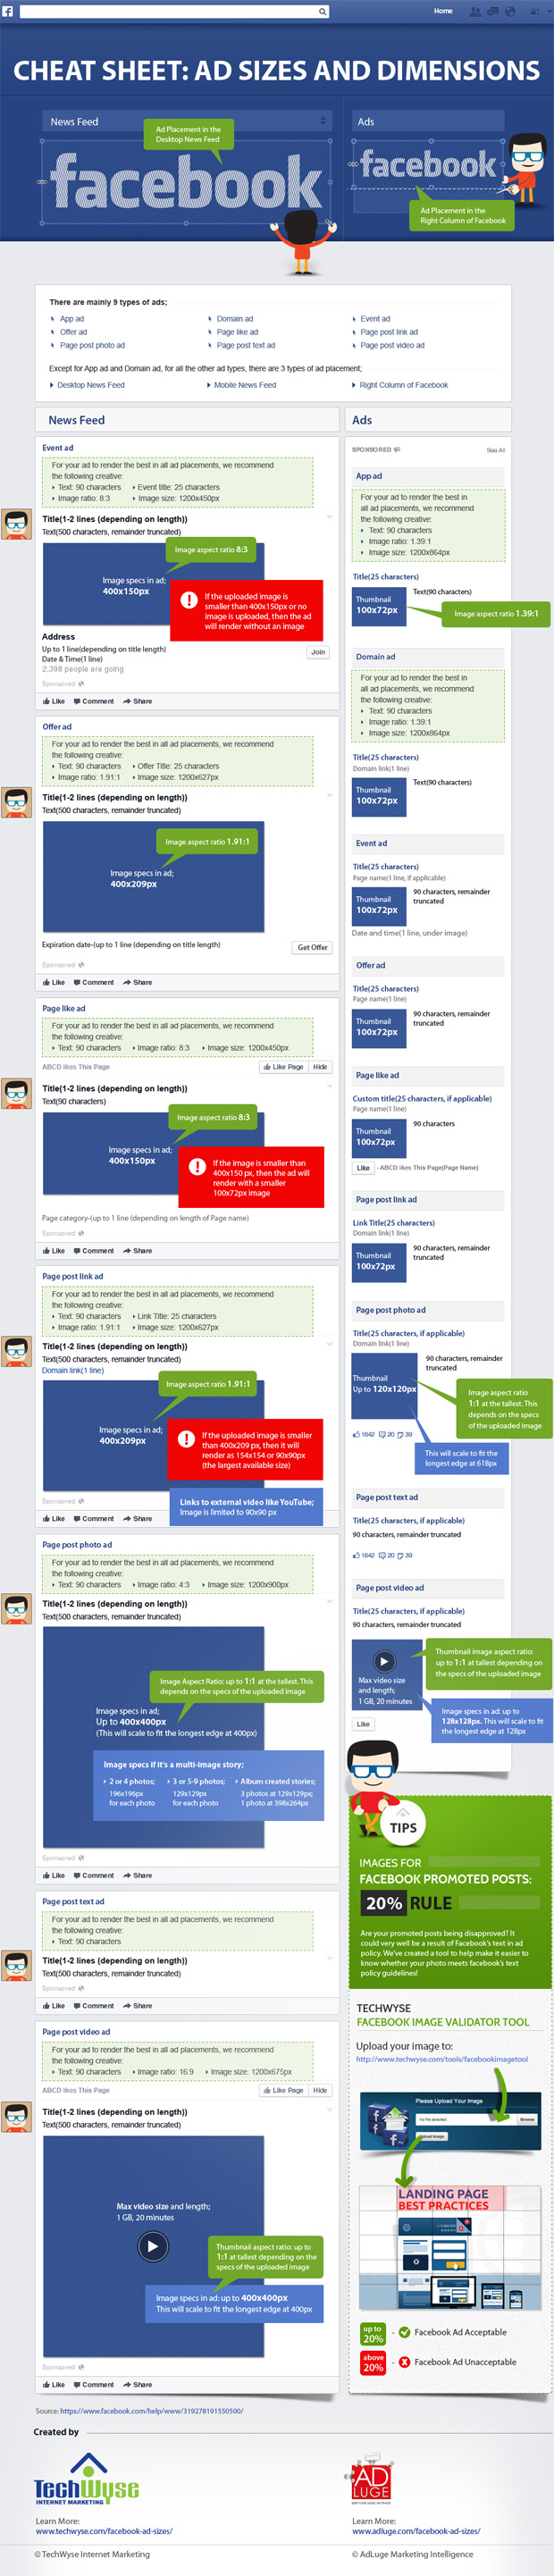 Facebook Ad Specifications and Dimensions